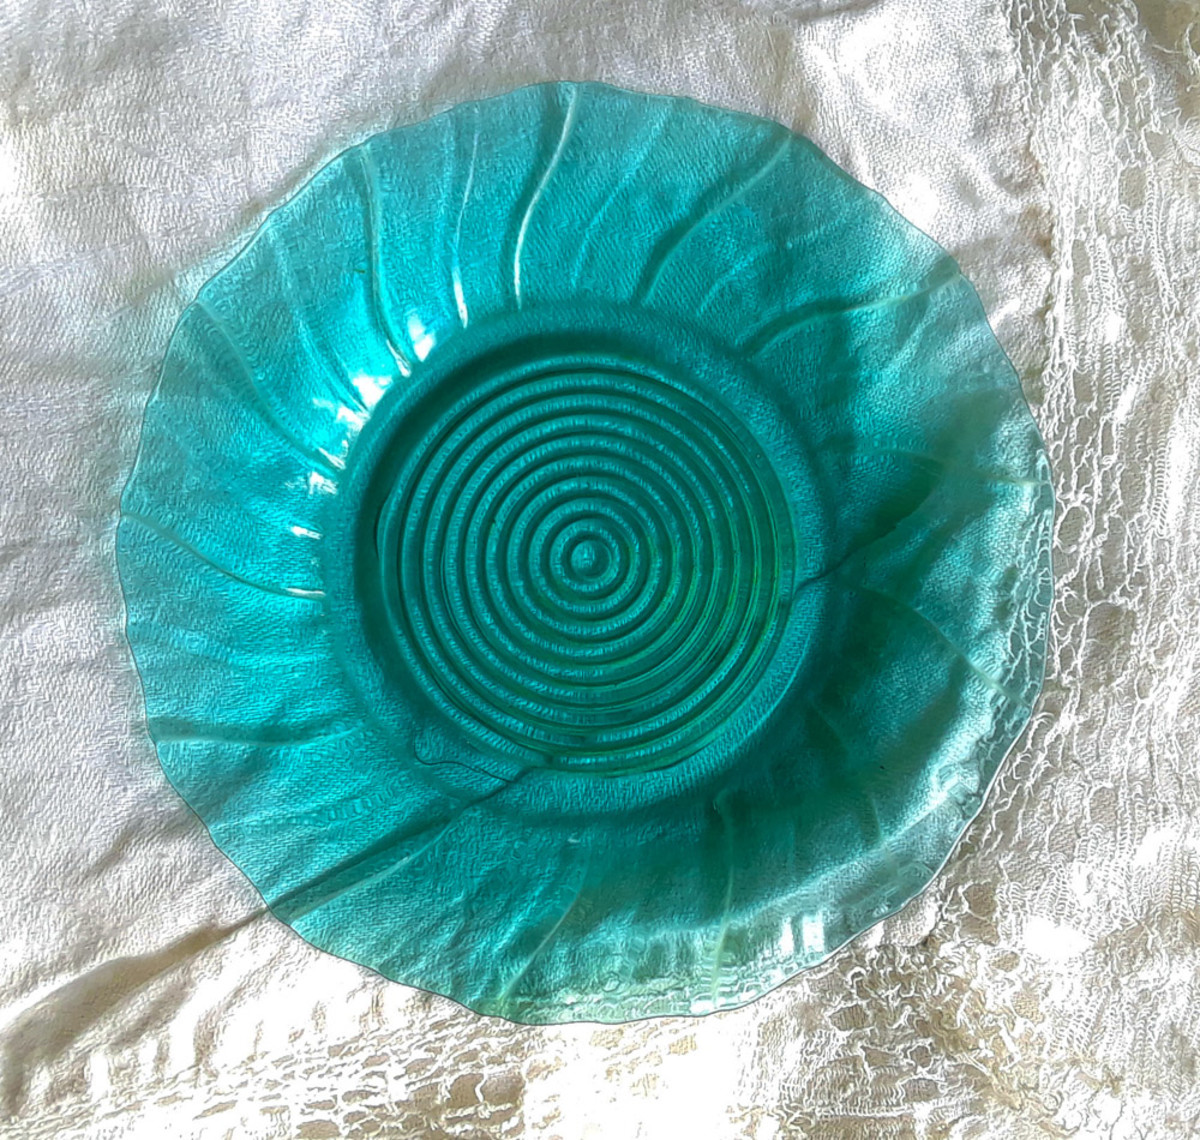 This Swirl or Petal Swirl luncheon plate was easy to identify due to its unusual color: ultramarine. (Jeanette Glass Company, 1937–1938)